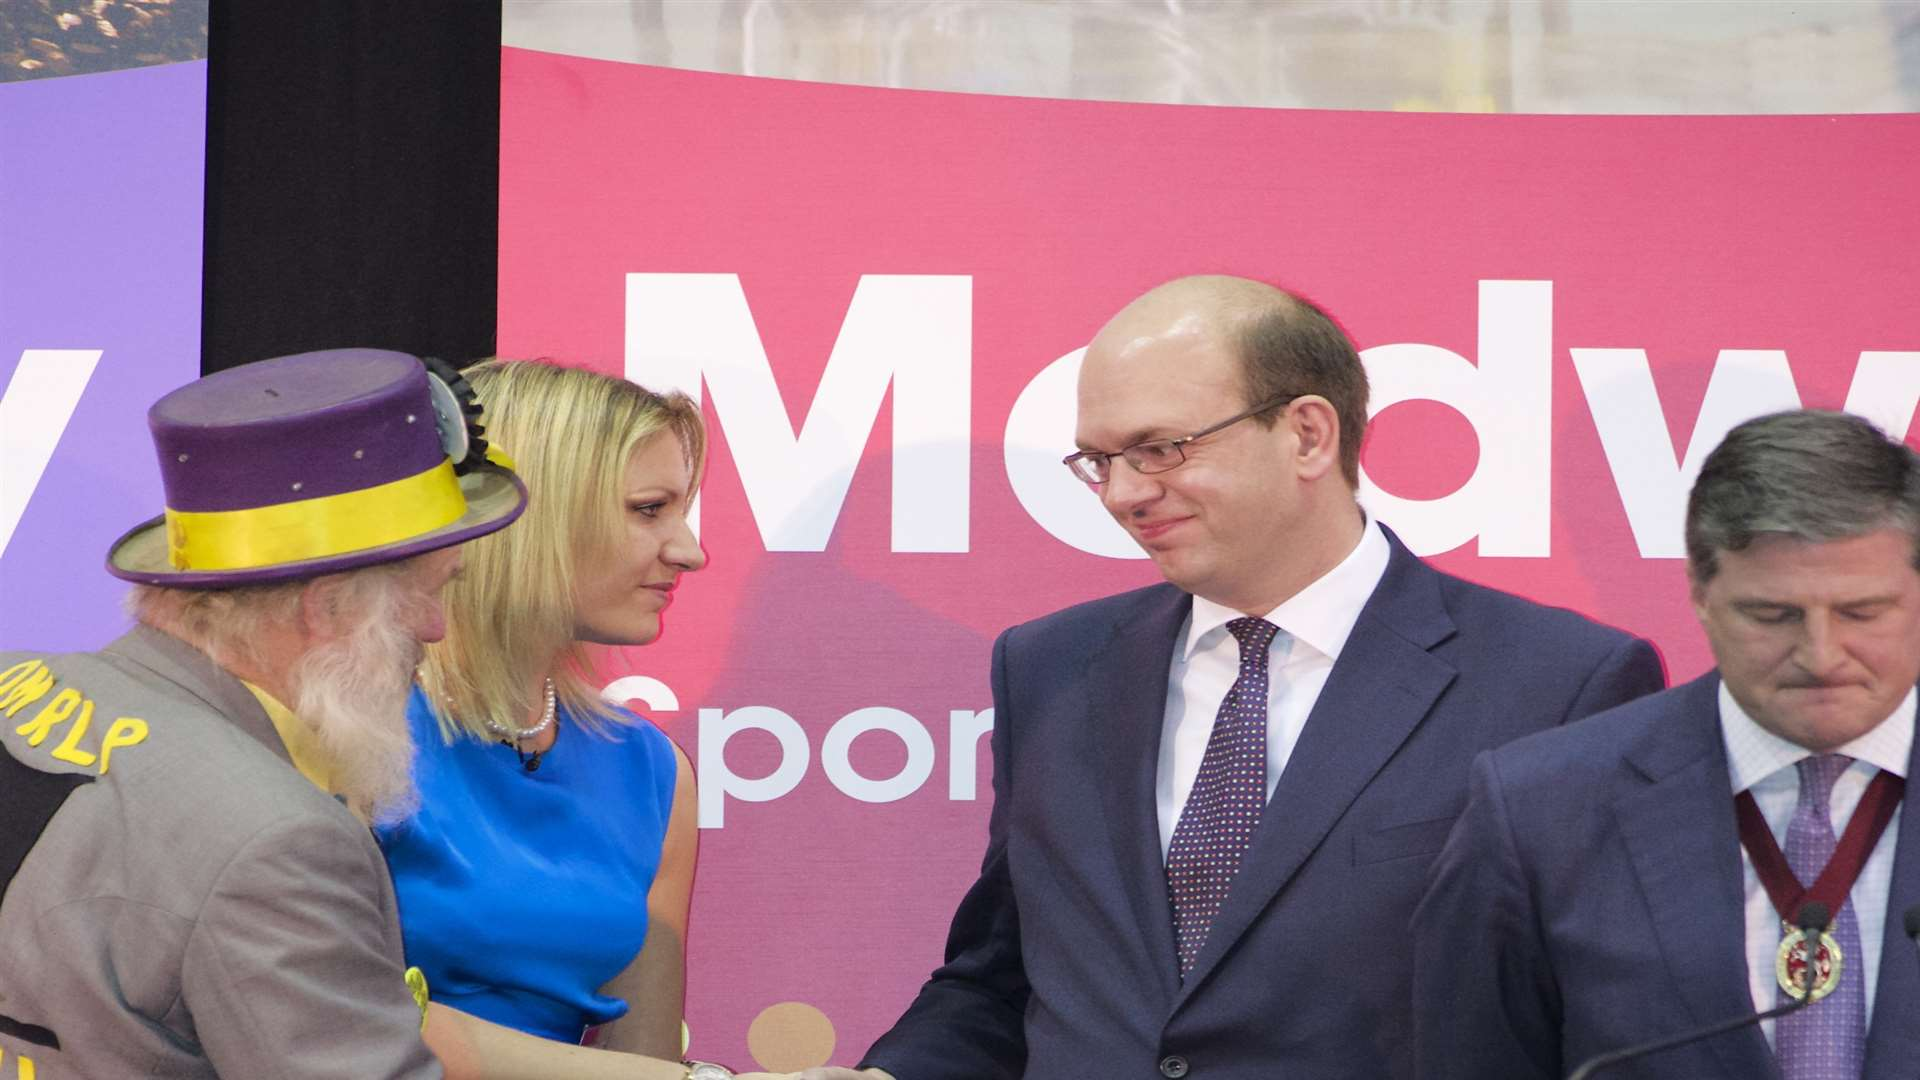 By-election winner Mark Reckless shakes other candidates' hands